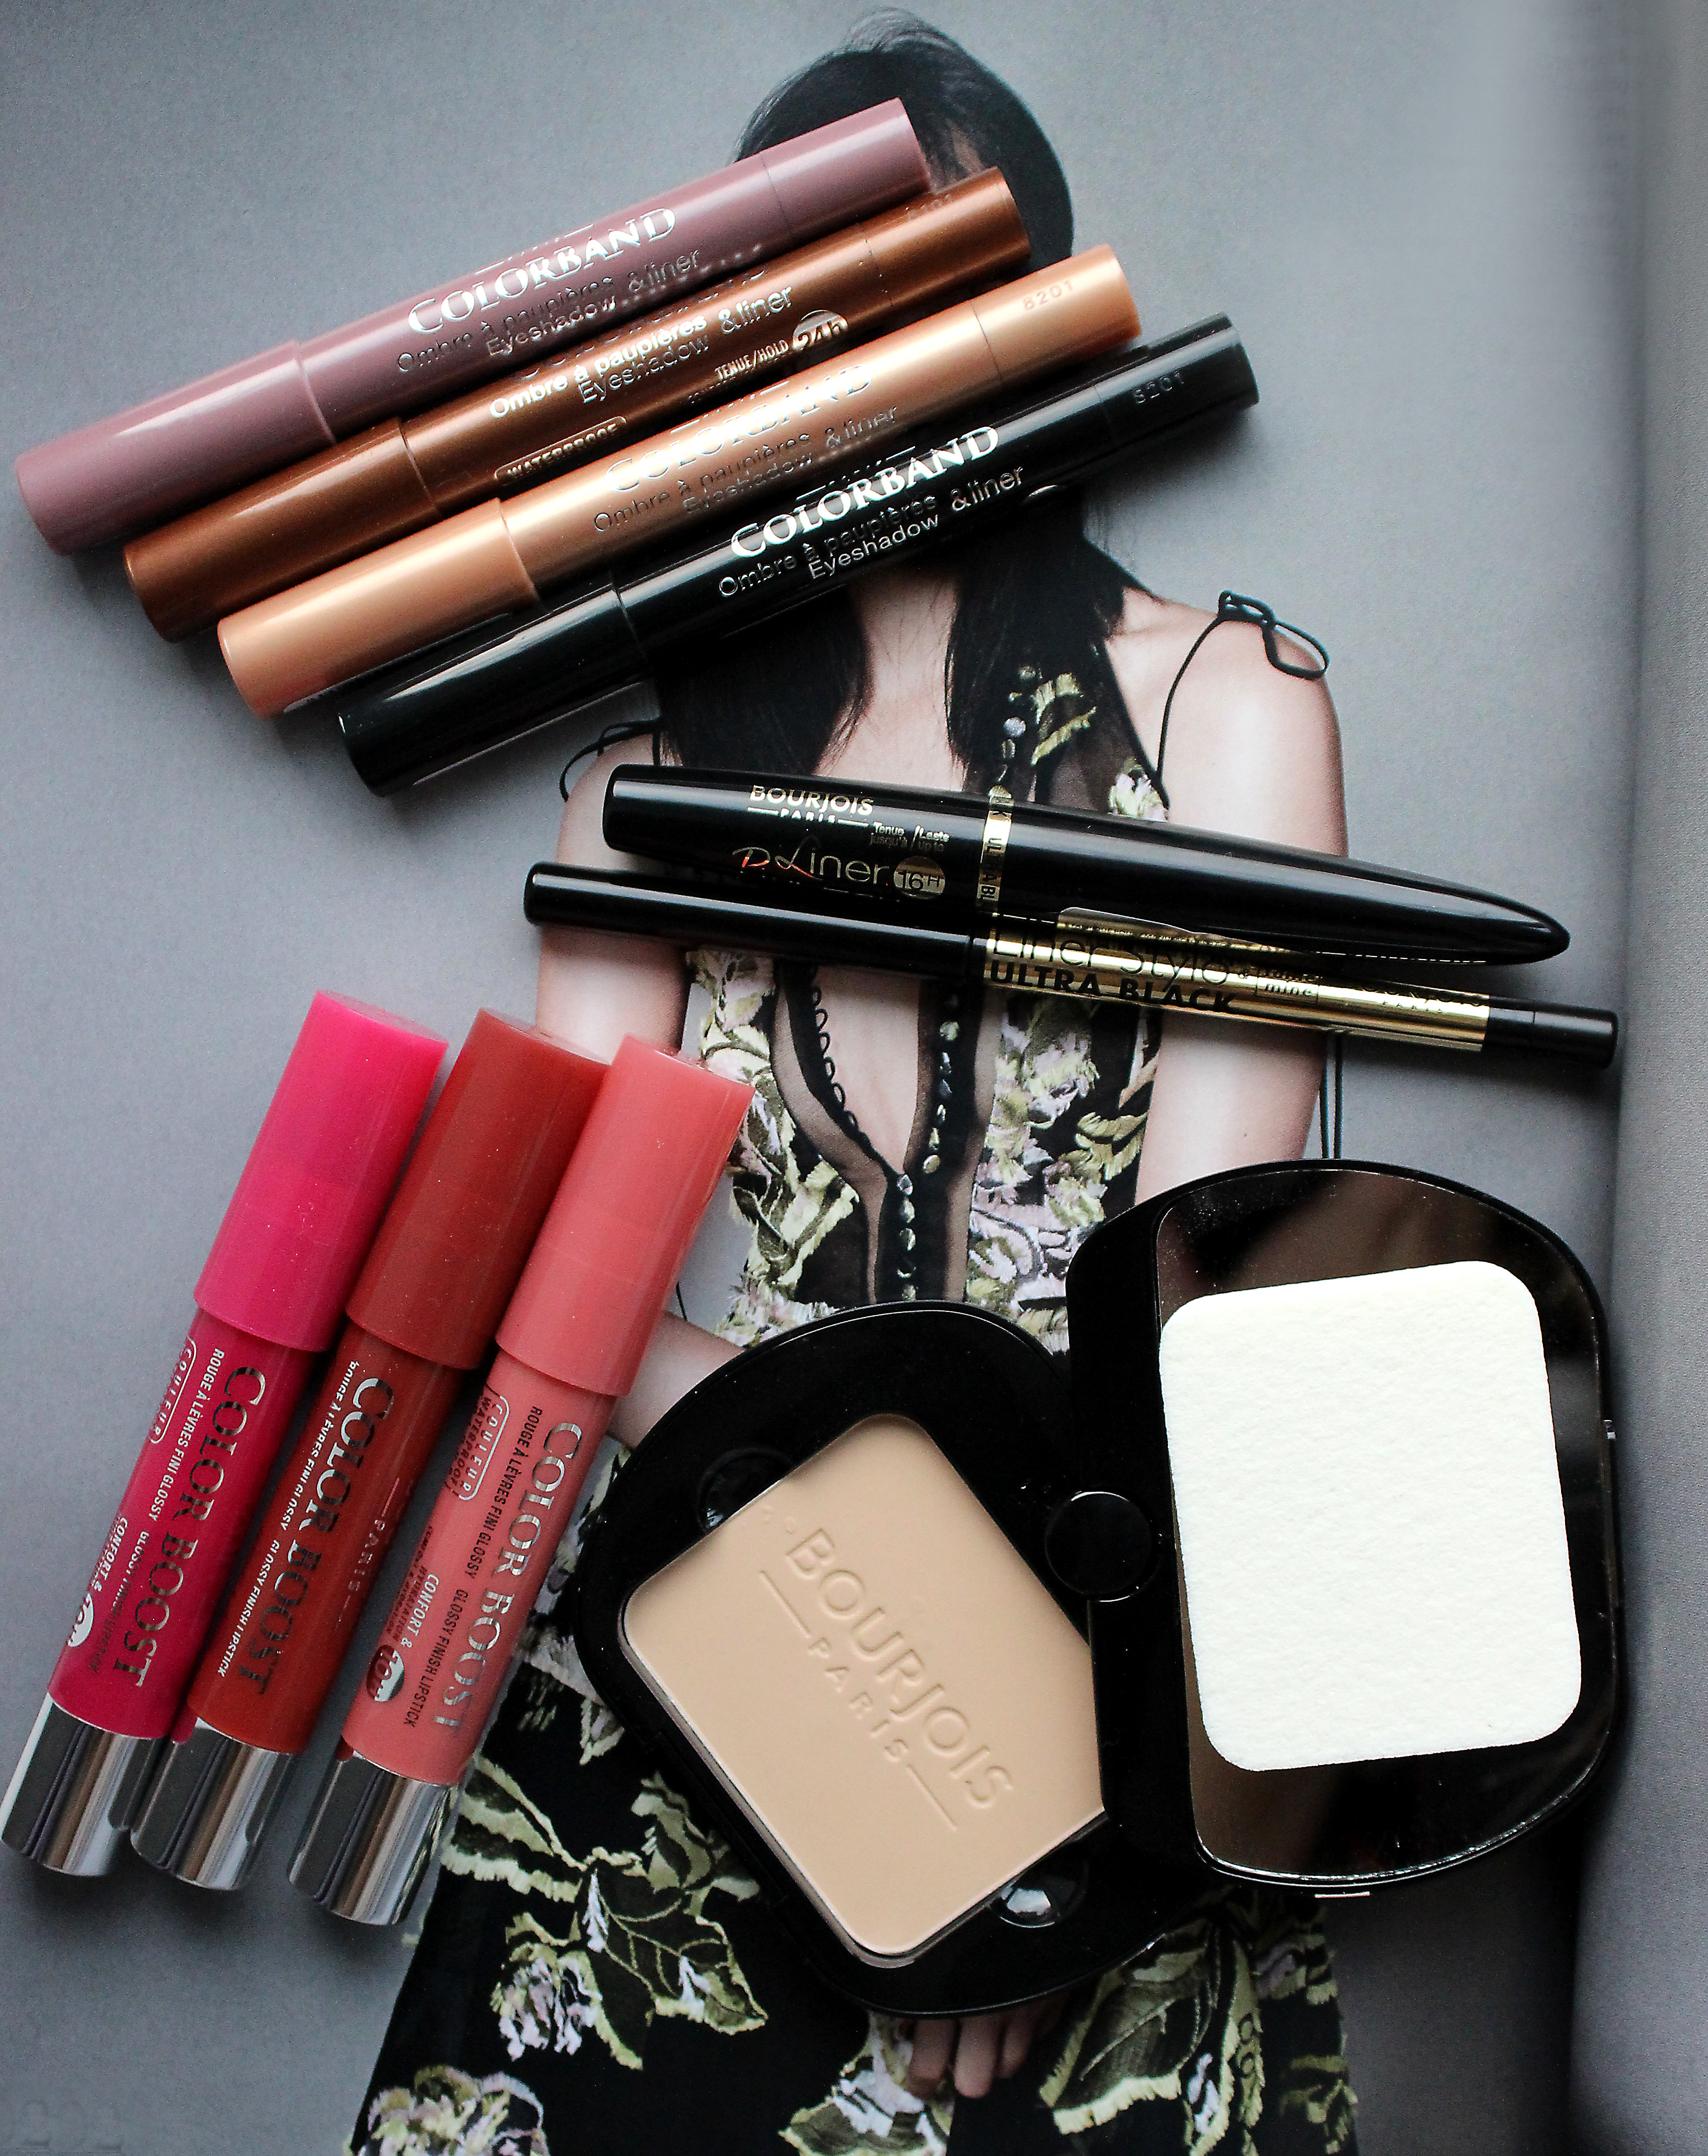 Bourjois Spring 2015 Launches, bourjois colorband,